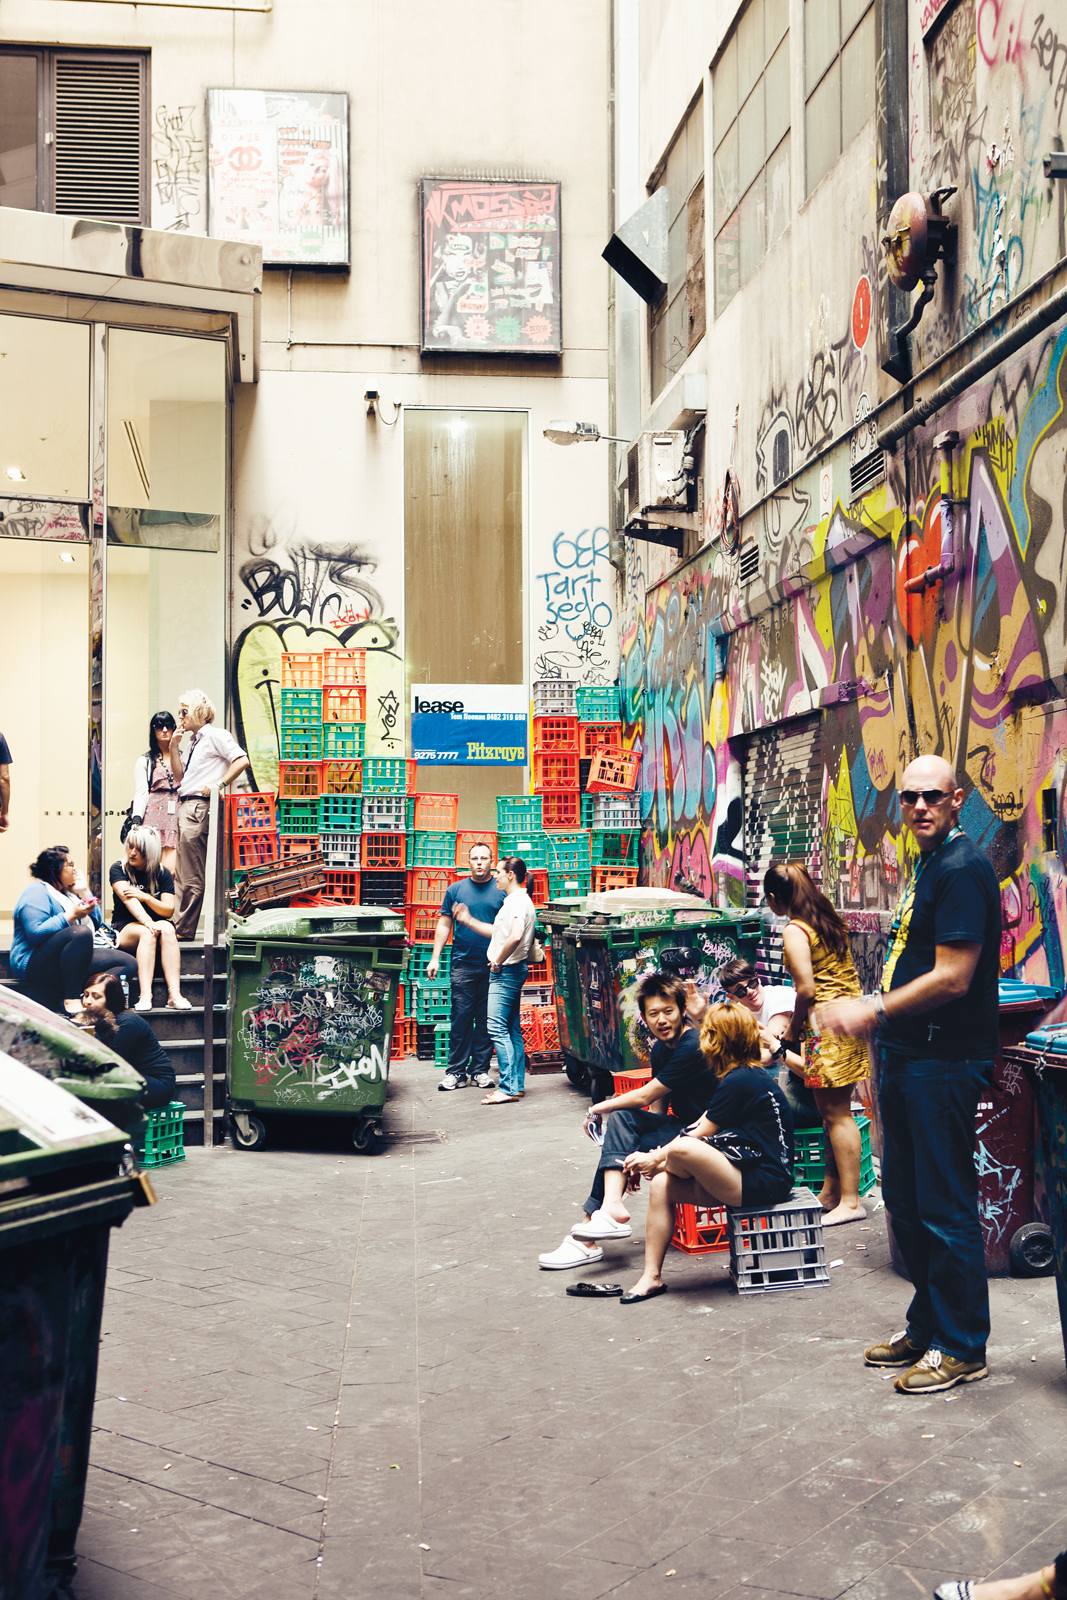 Croft Alley lane in Melbourne, Australia